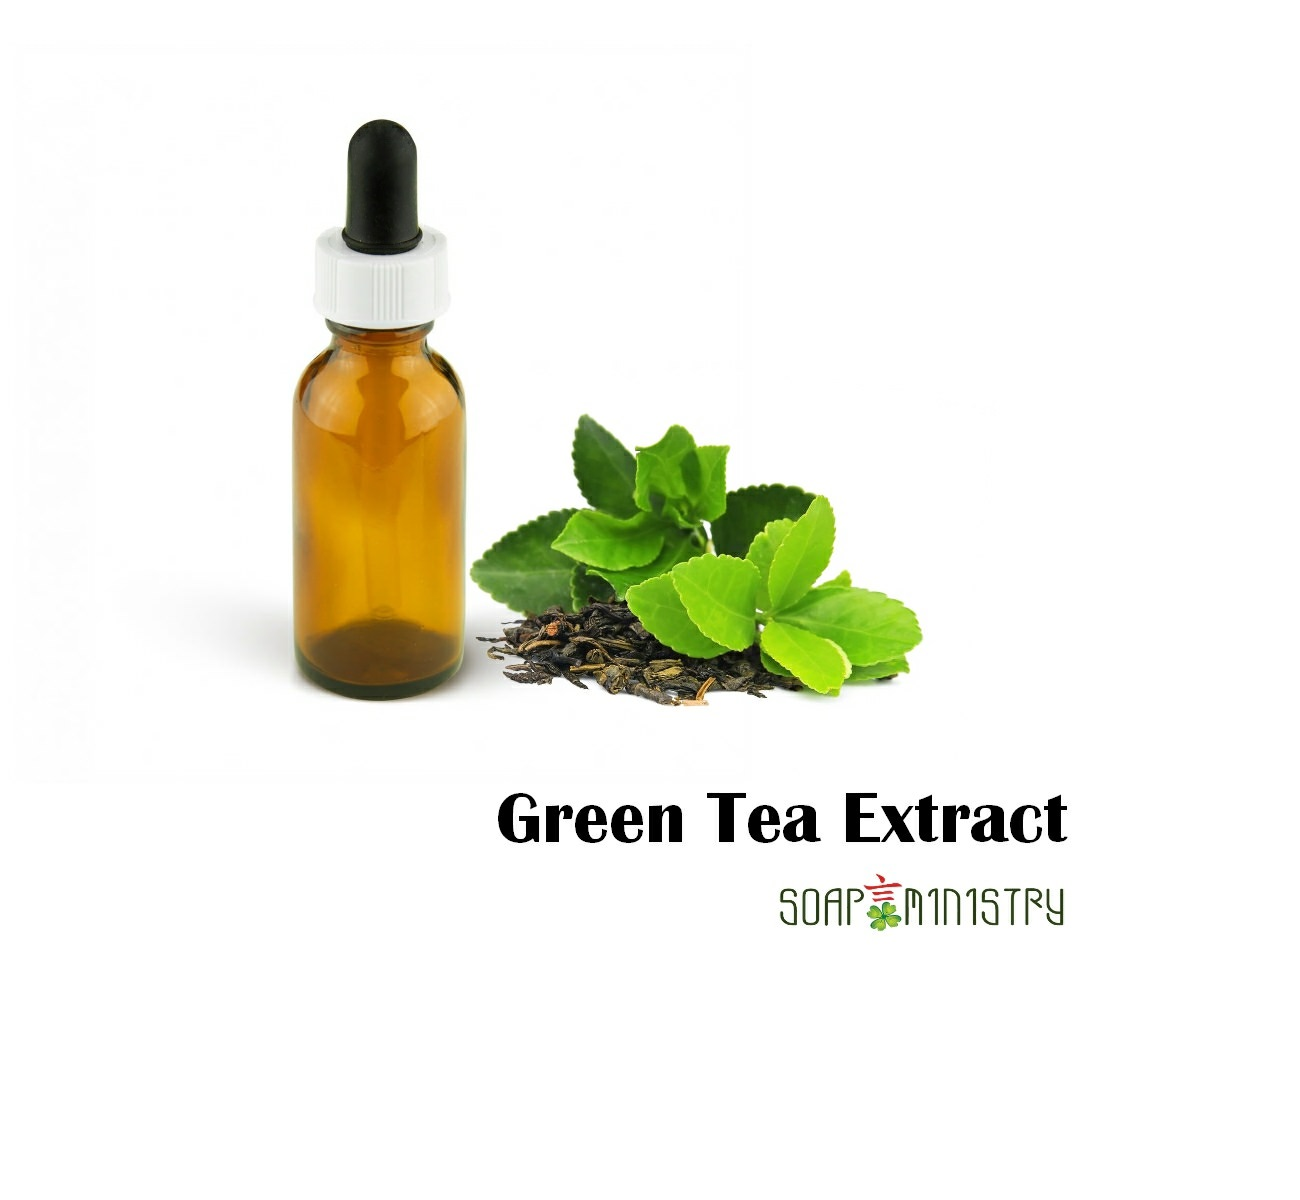 Green Tea Extract 15g